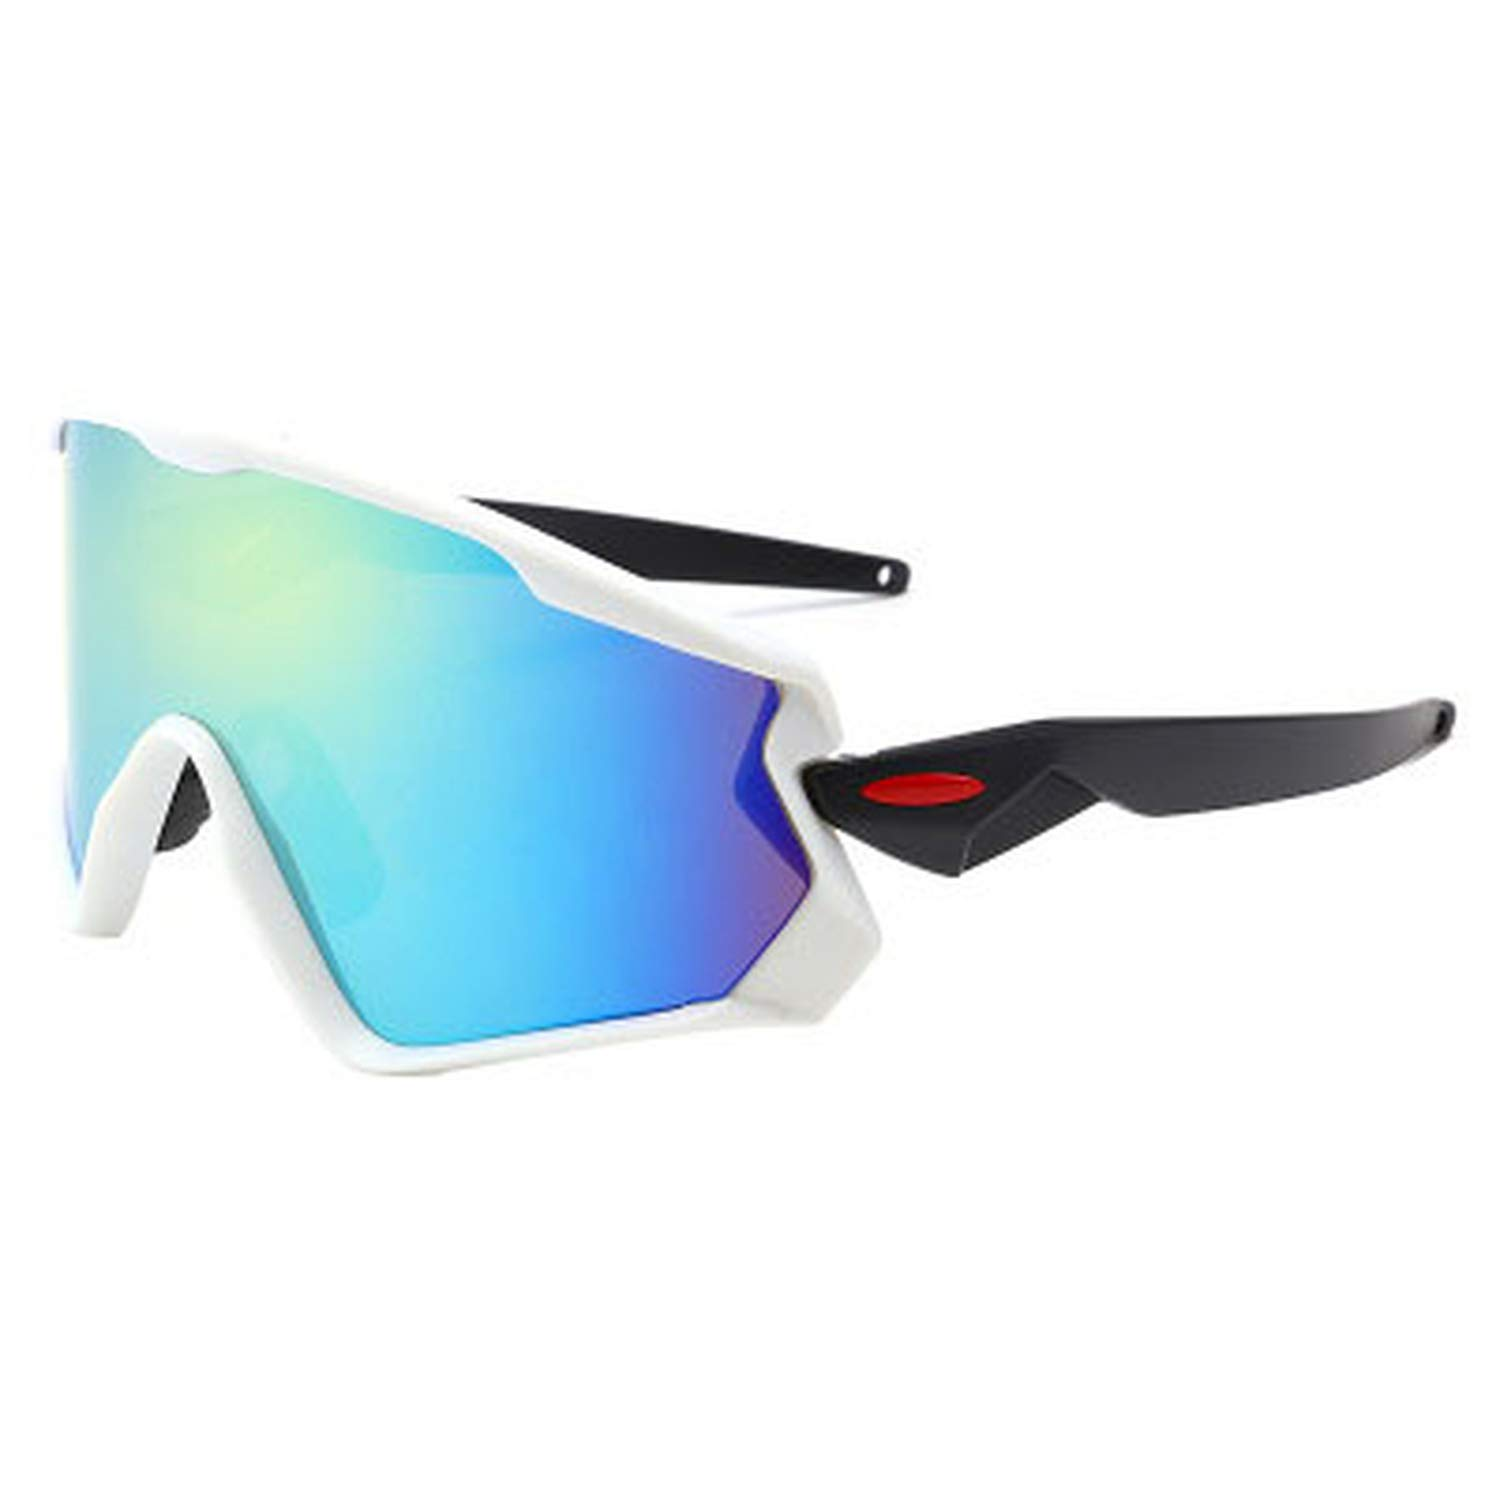 GYDR5D4 2019 Men Women Cycling Glasses Mountain Bike Road Bike Sunglasses Bicycle Goggles